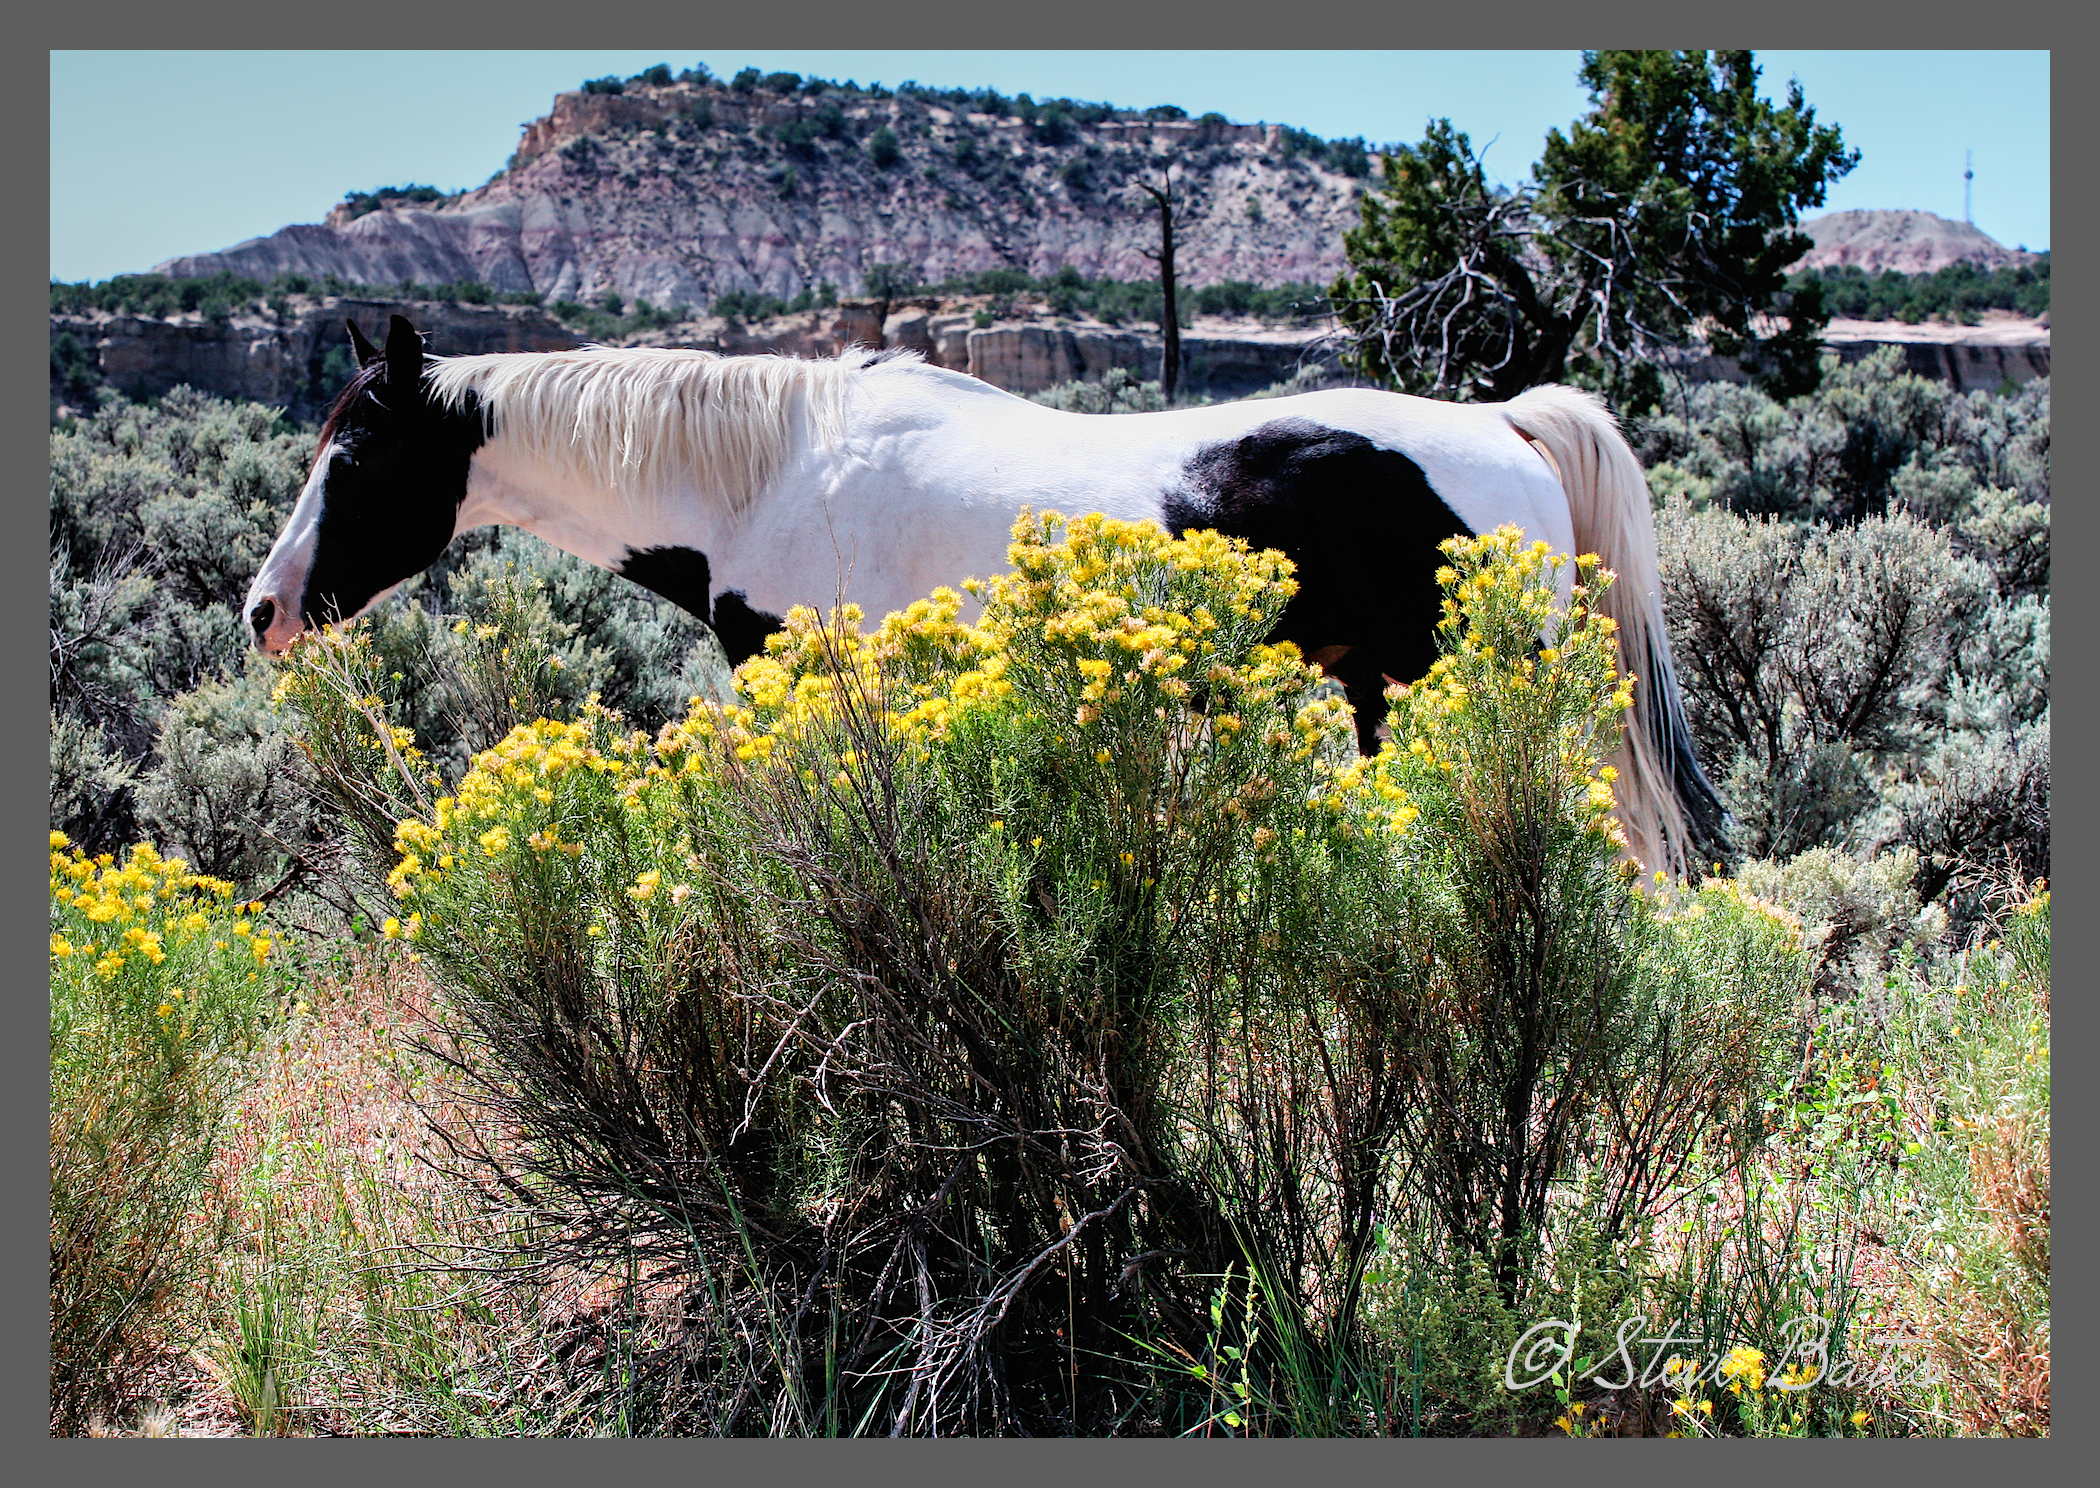 Steve skunked us on the horse. To get yellow flowers as well . . . just lucky!